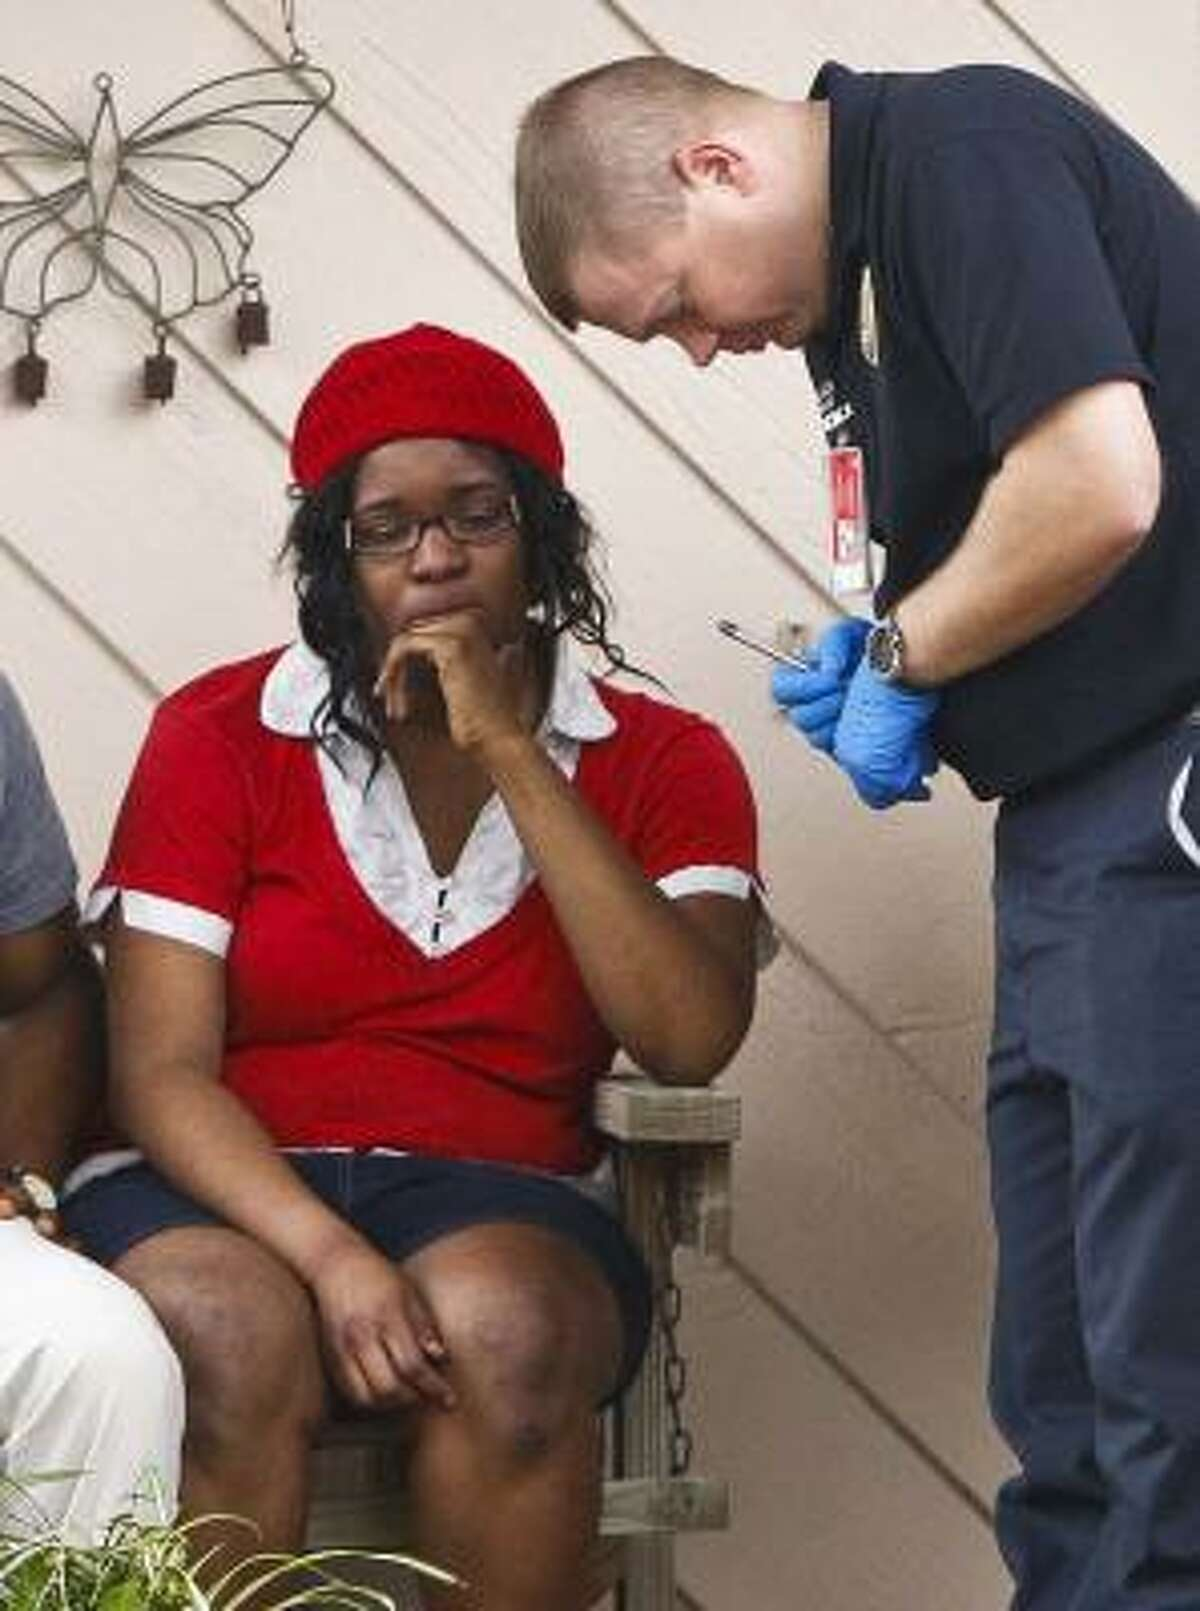 Jessica Tata, 22, operator of Jackie's Child Care, talks with Firefighter Paramedic Randall Riccitelli, after a fire broke out at the day care center Thursday, Feb. 24, 2011, in Houston.